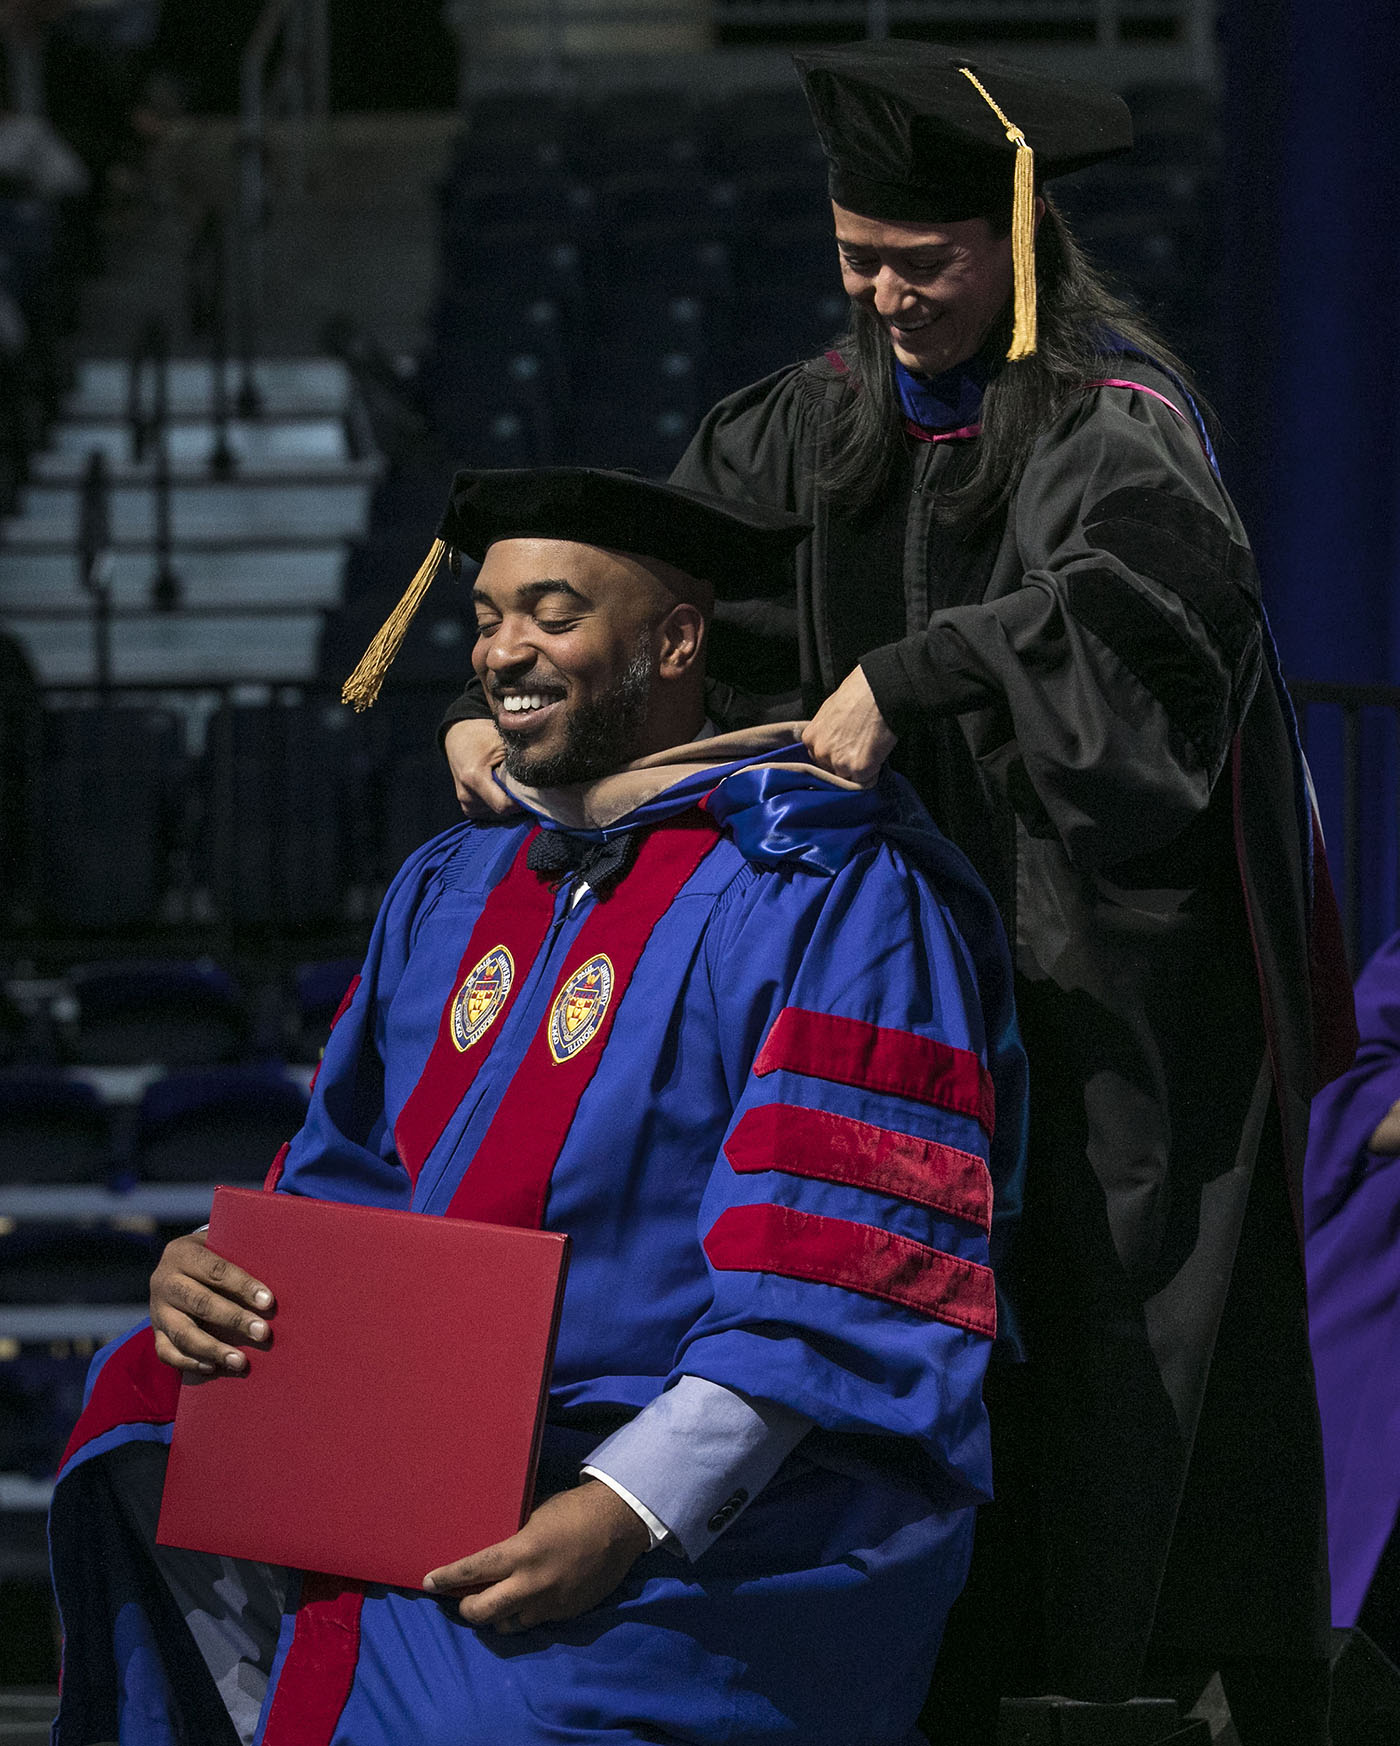 Driehaus College of Business doctoral graduate Brandon Hendrix receives his hood during the DePaul University commencement ceremony.